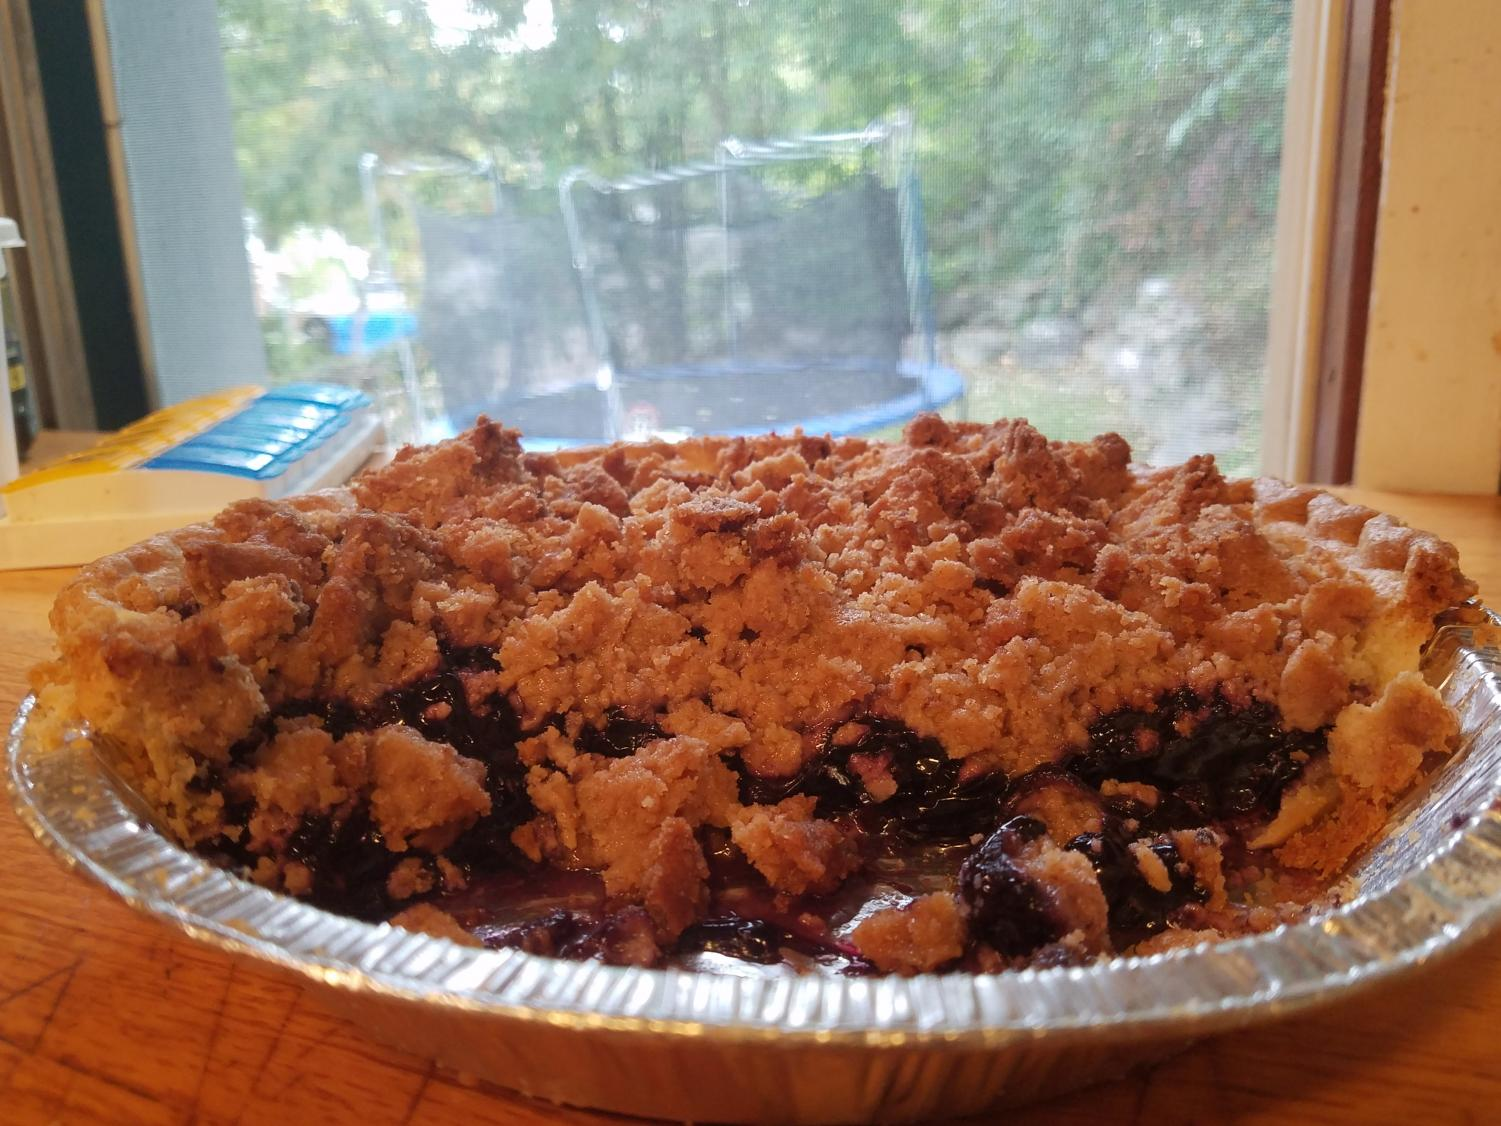 Above: A tasty blueberry crisp pie from Shannon's Eyes on the Pies just waiting to be devoured. Photo Courtesy: Sean Fagan